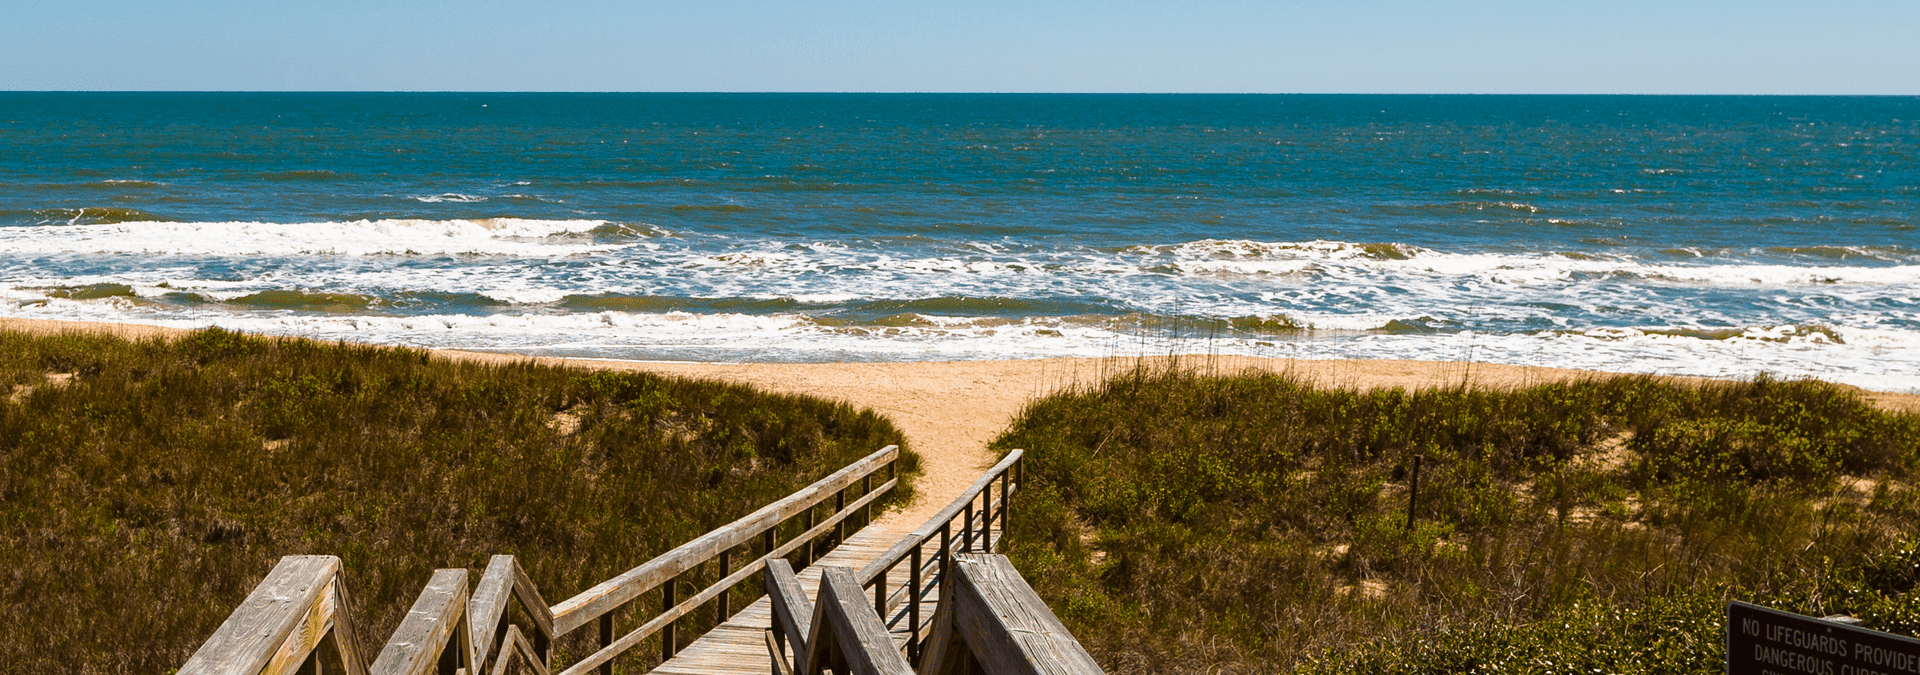 a walkway leading to the ocean in ponte vedra beach florida